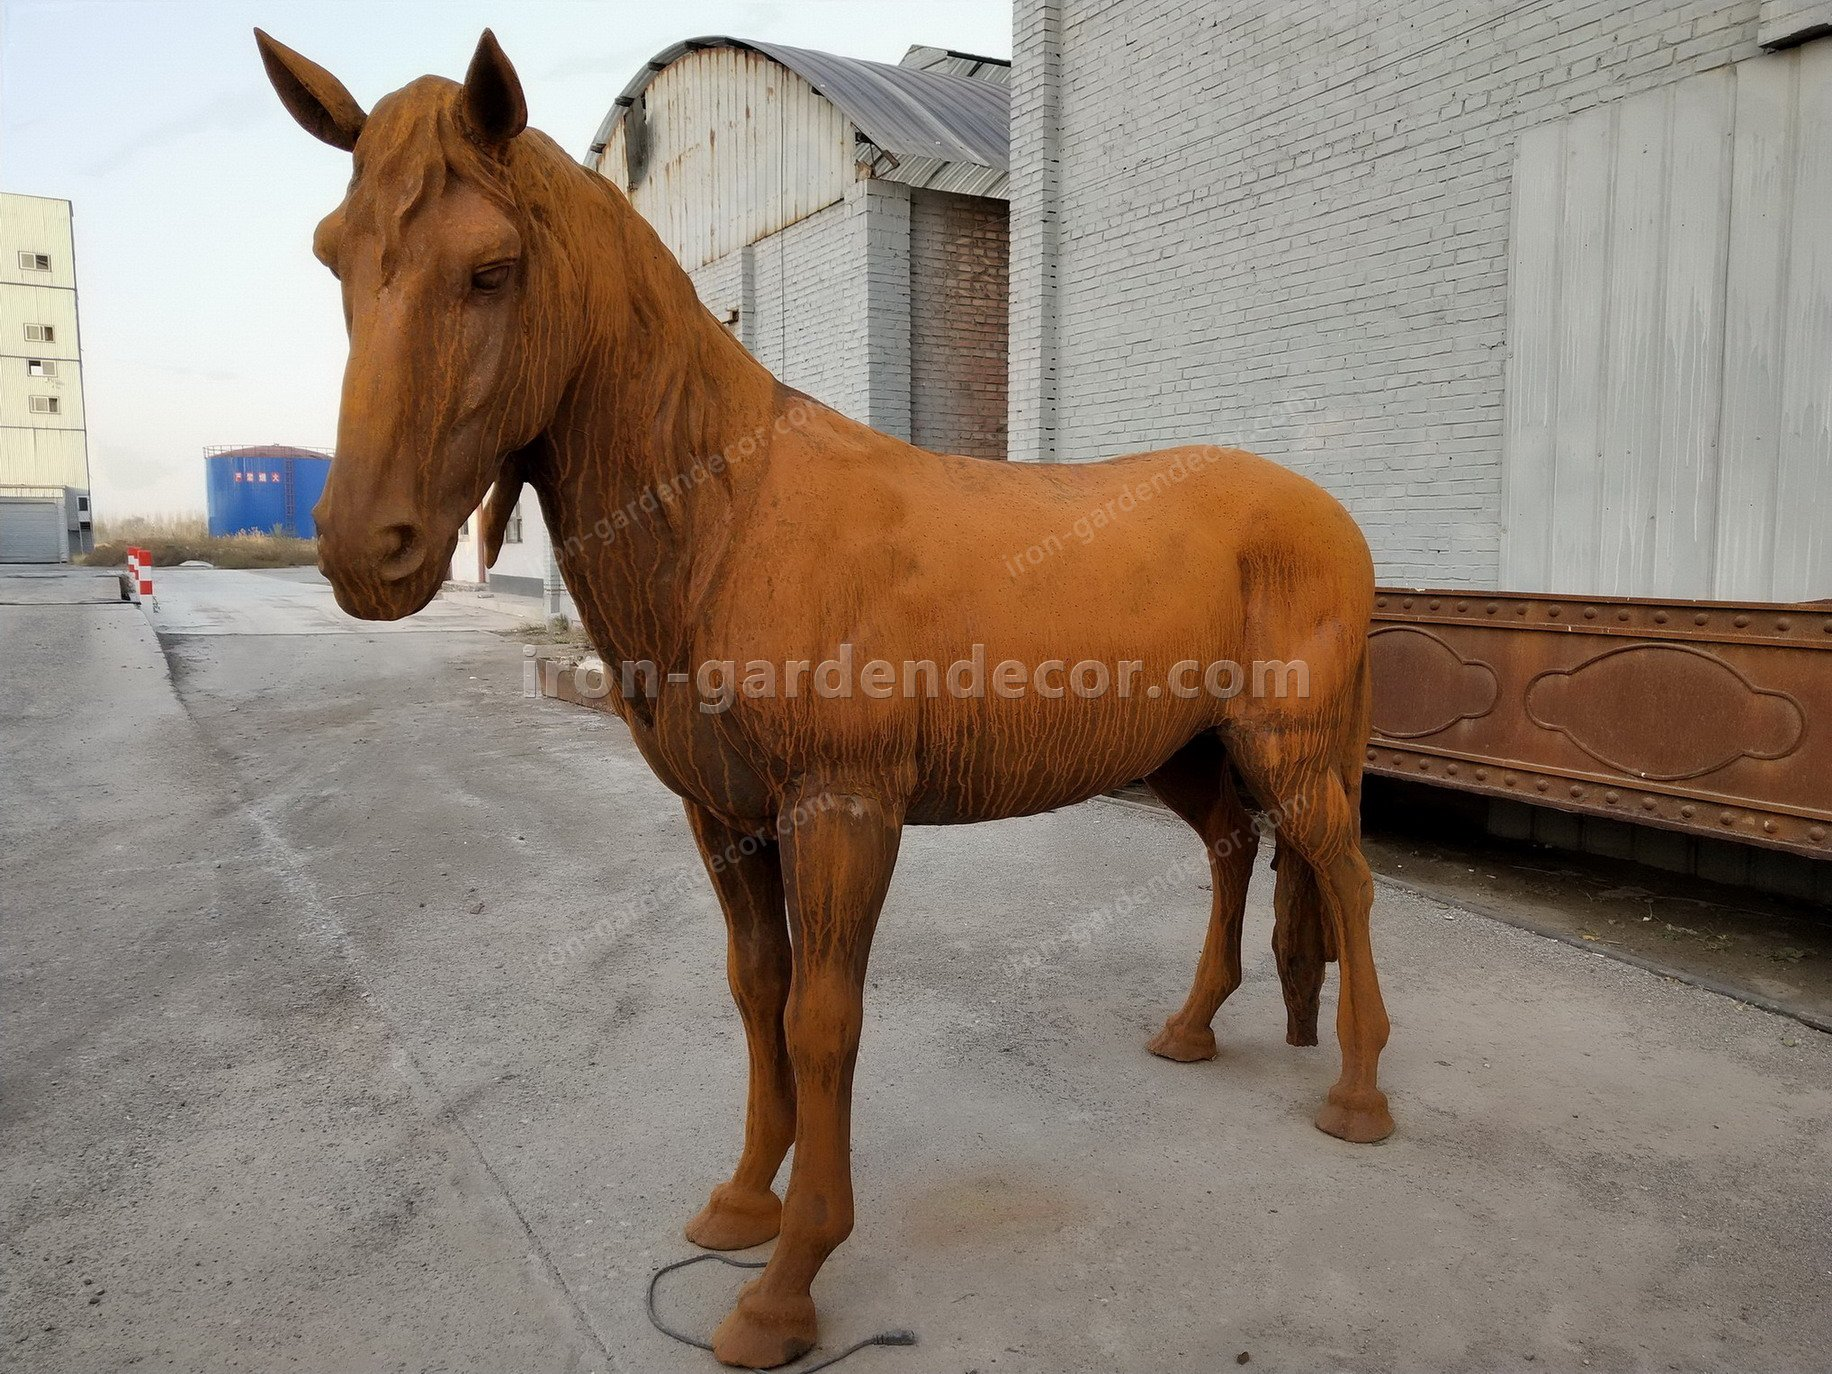 normal size cast iron animal of horse garden animal, large horse animal-SS6027 (17)